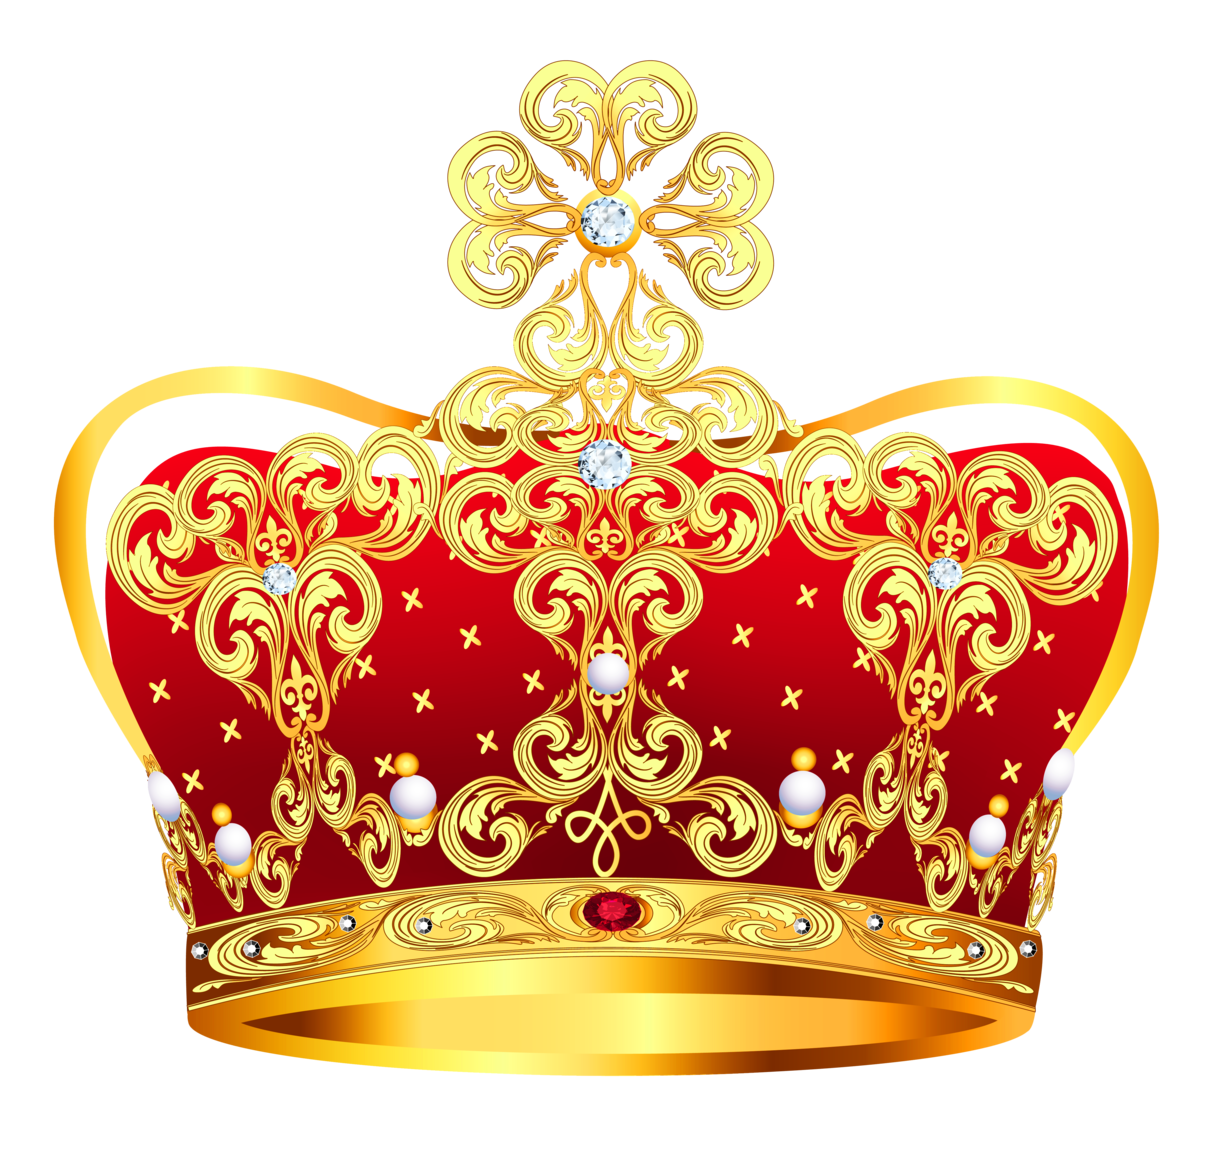 gold and red crown with pearls clipart picture